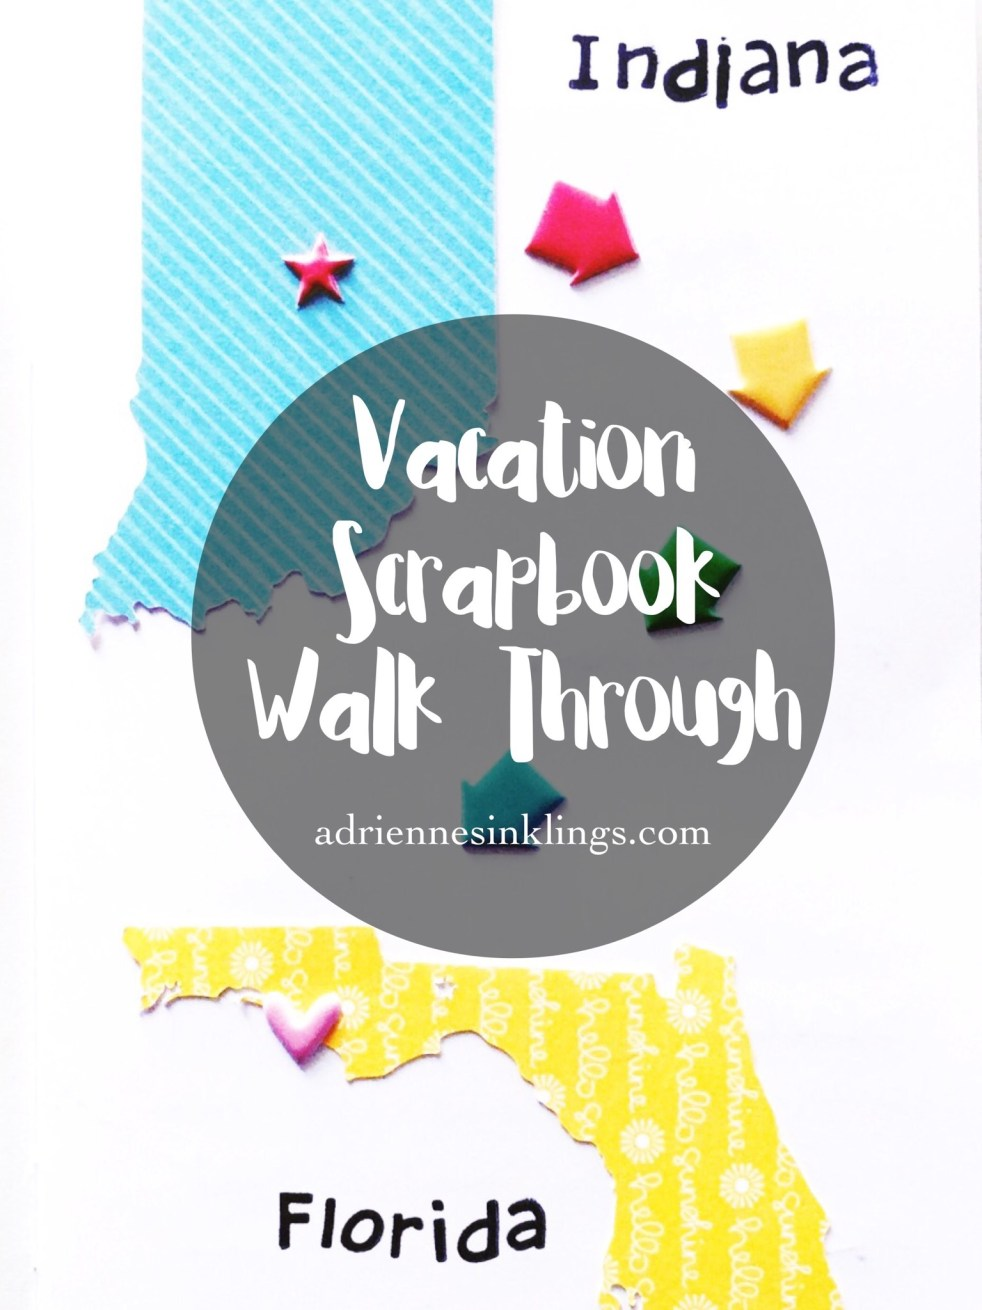 Vacation Scrapbook Walk Through | adriennesinklings.com